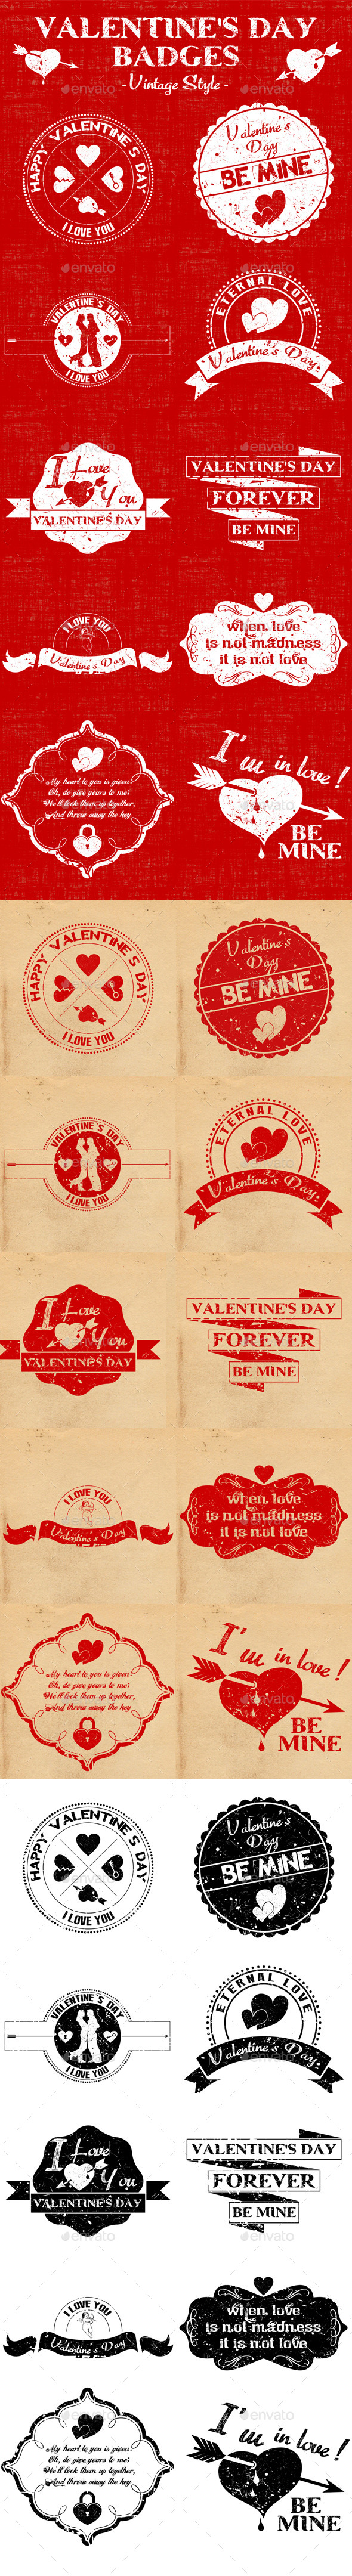 Valentine's Day Badges - Vintage Style - Badges & Stickers Web Elements